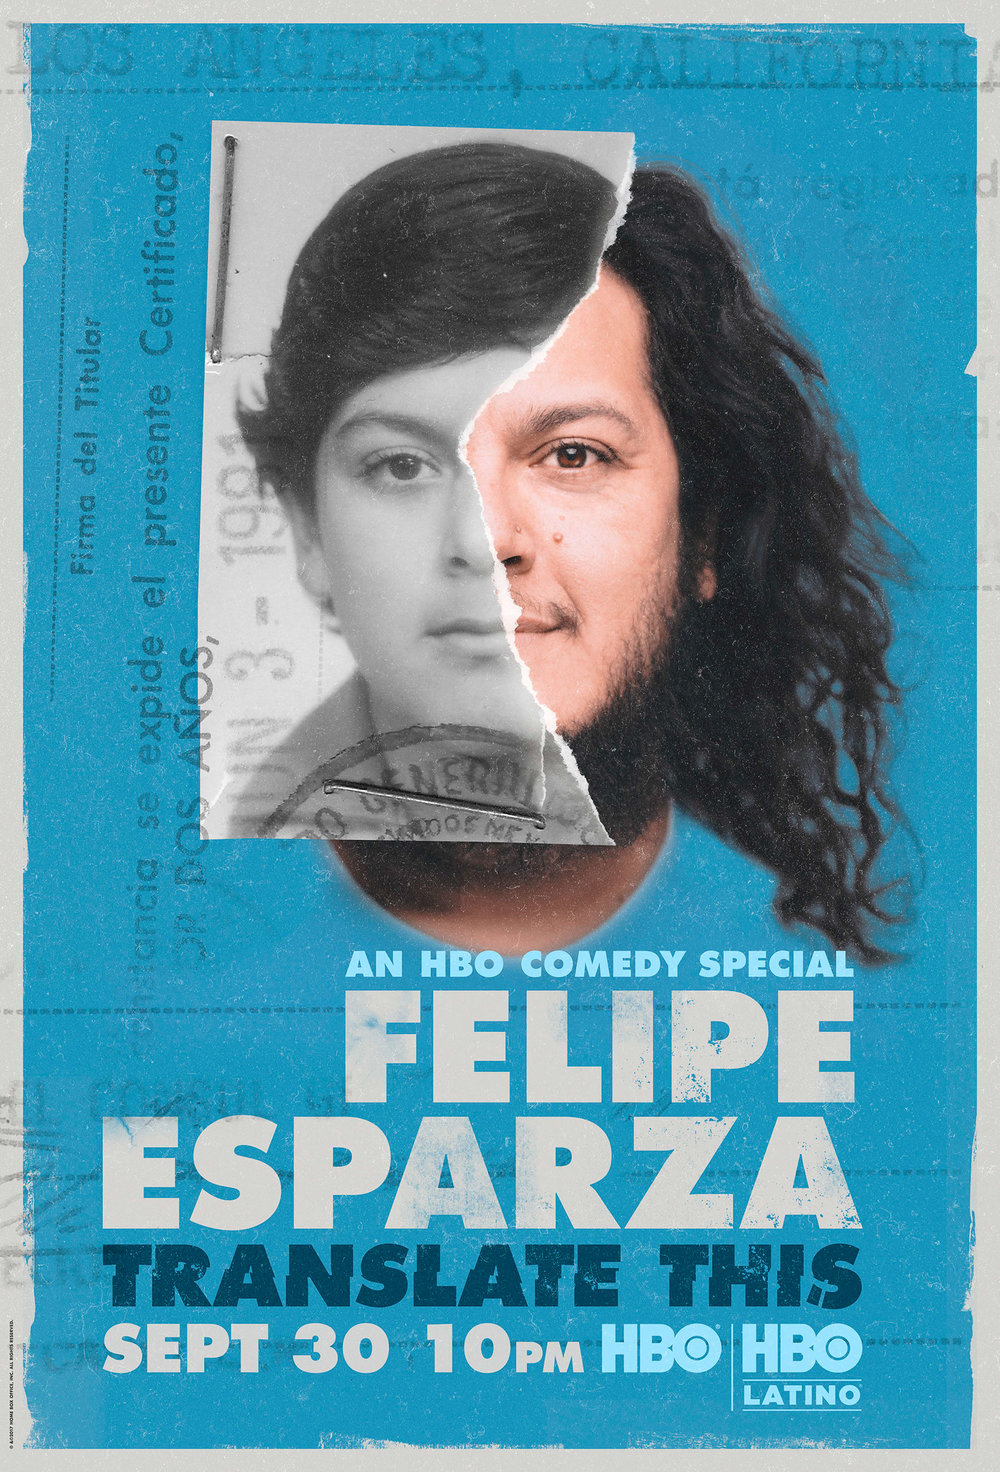 Felipe-Esparza-HBO-Special-Translate-This-Photo-Poster-Design-Juan-Luis-Garcia-2500px.jpg